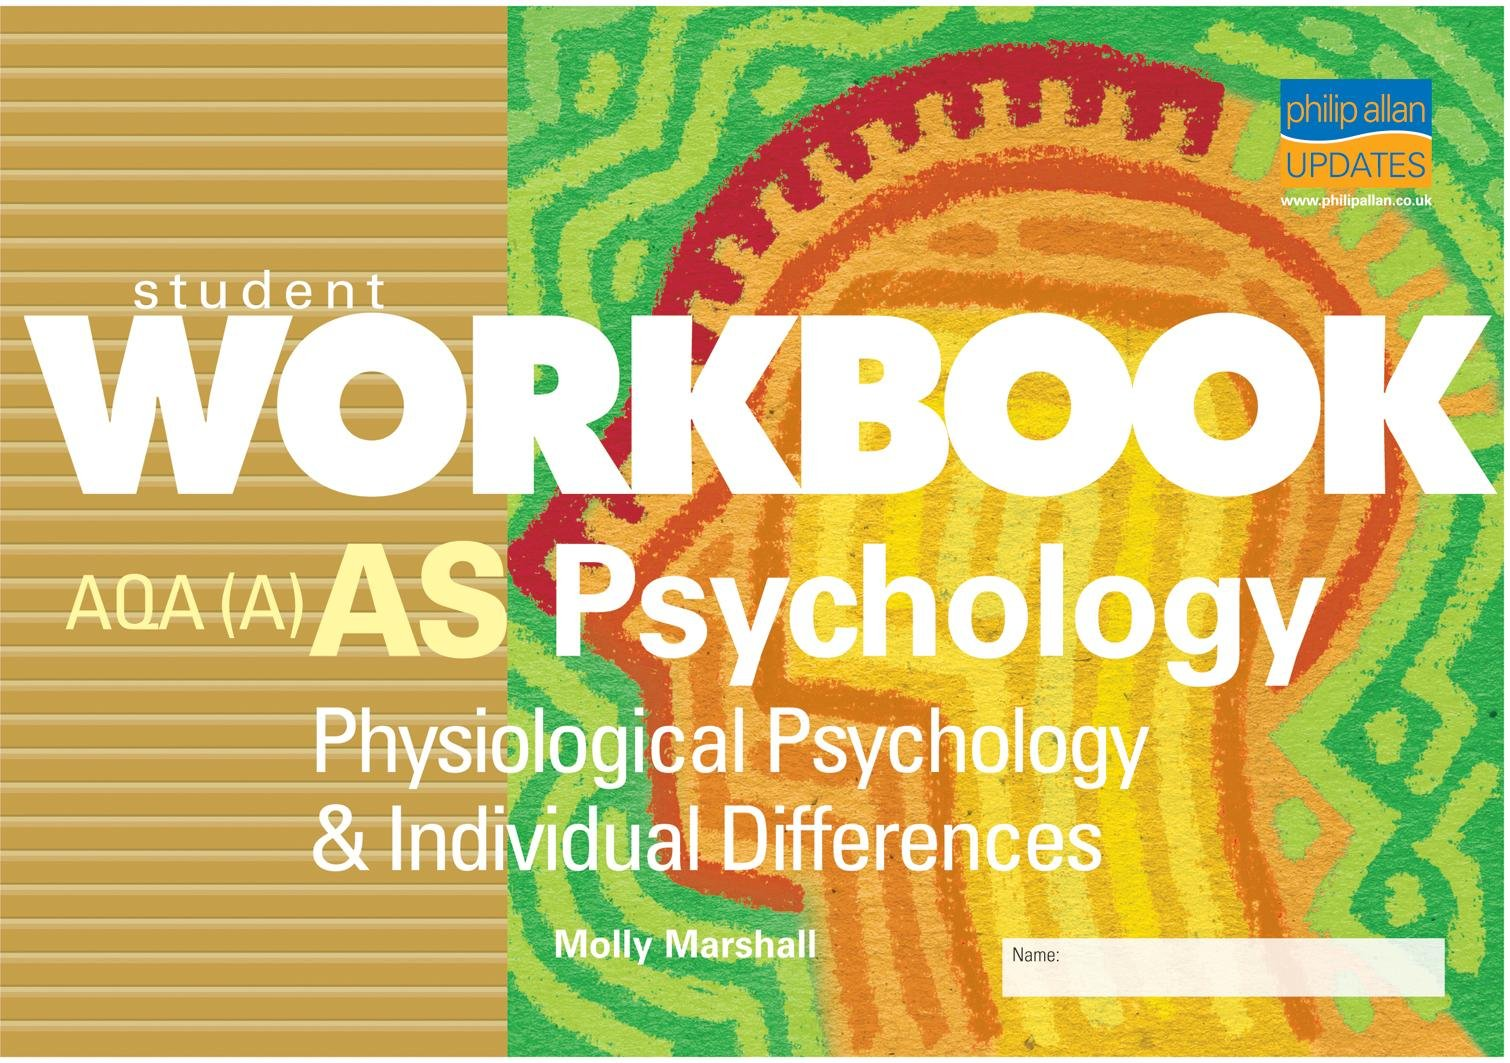 Workbooks psychology workbook : AS Psychology AQA(A): Physiological Psychology and Individual ...